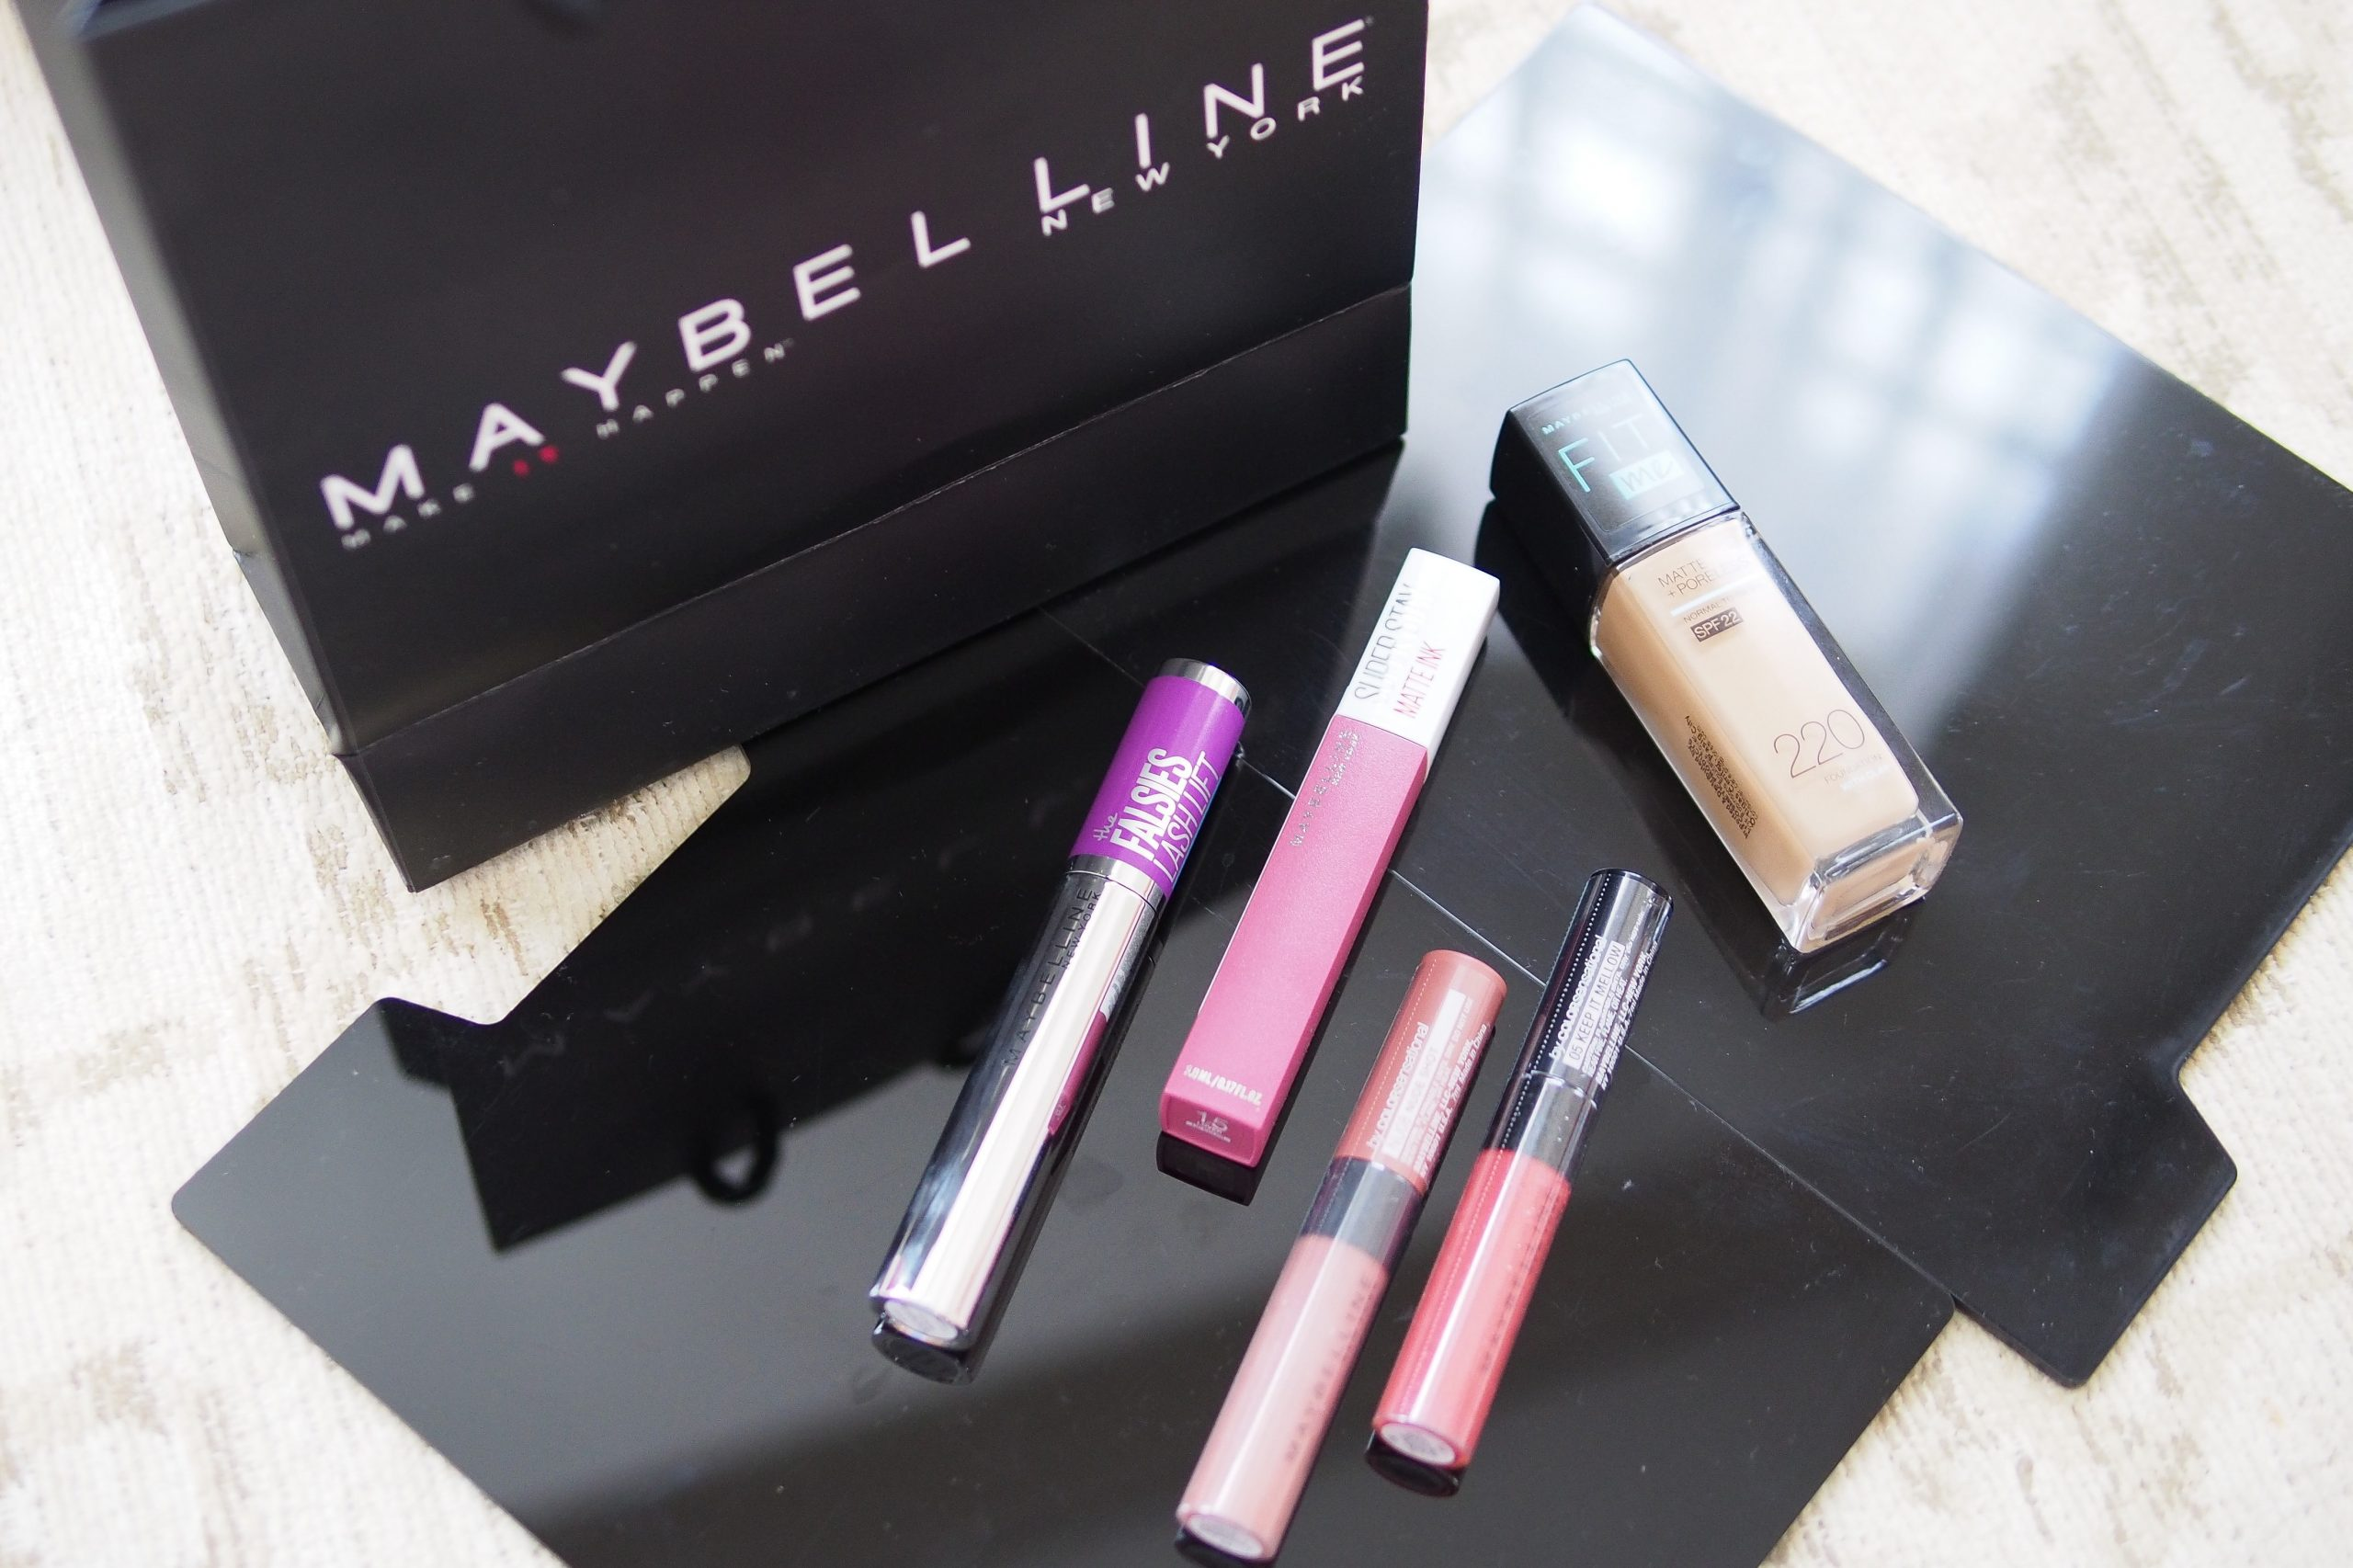 Get up to 50% off on Maybelline Favorites during their Shopee Super Brand Day Sale